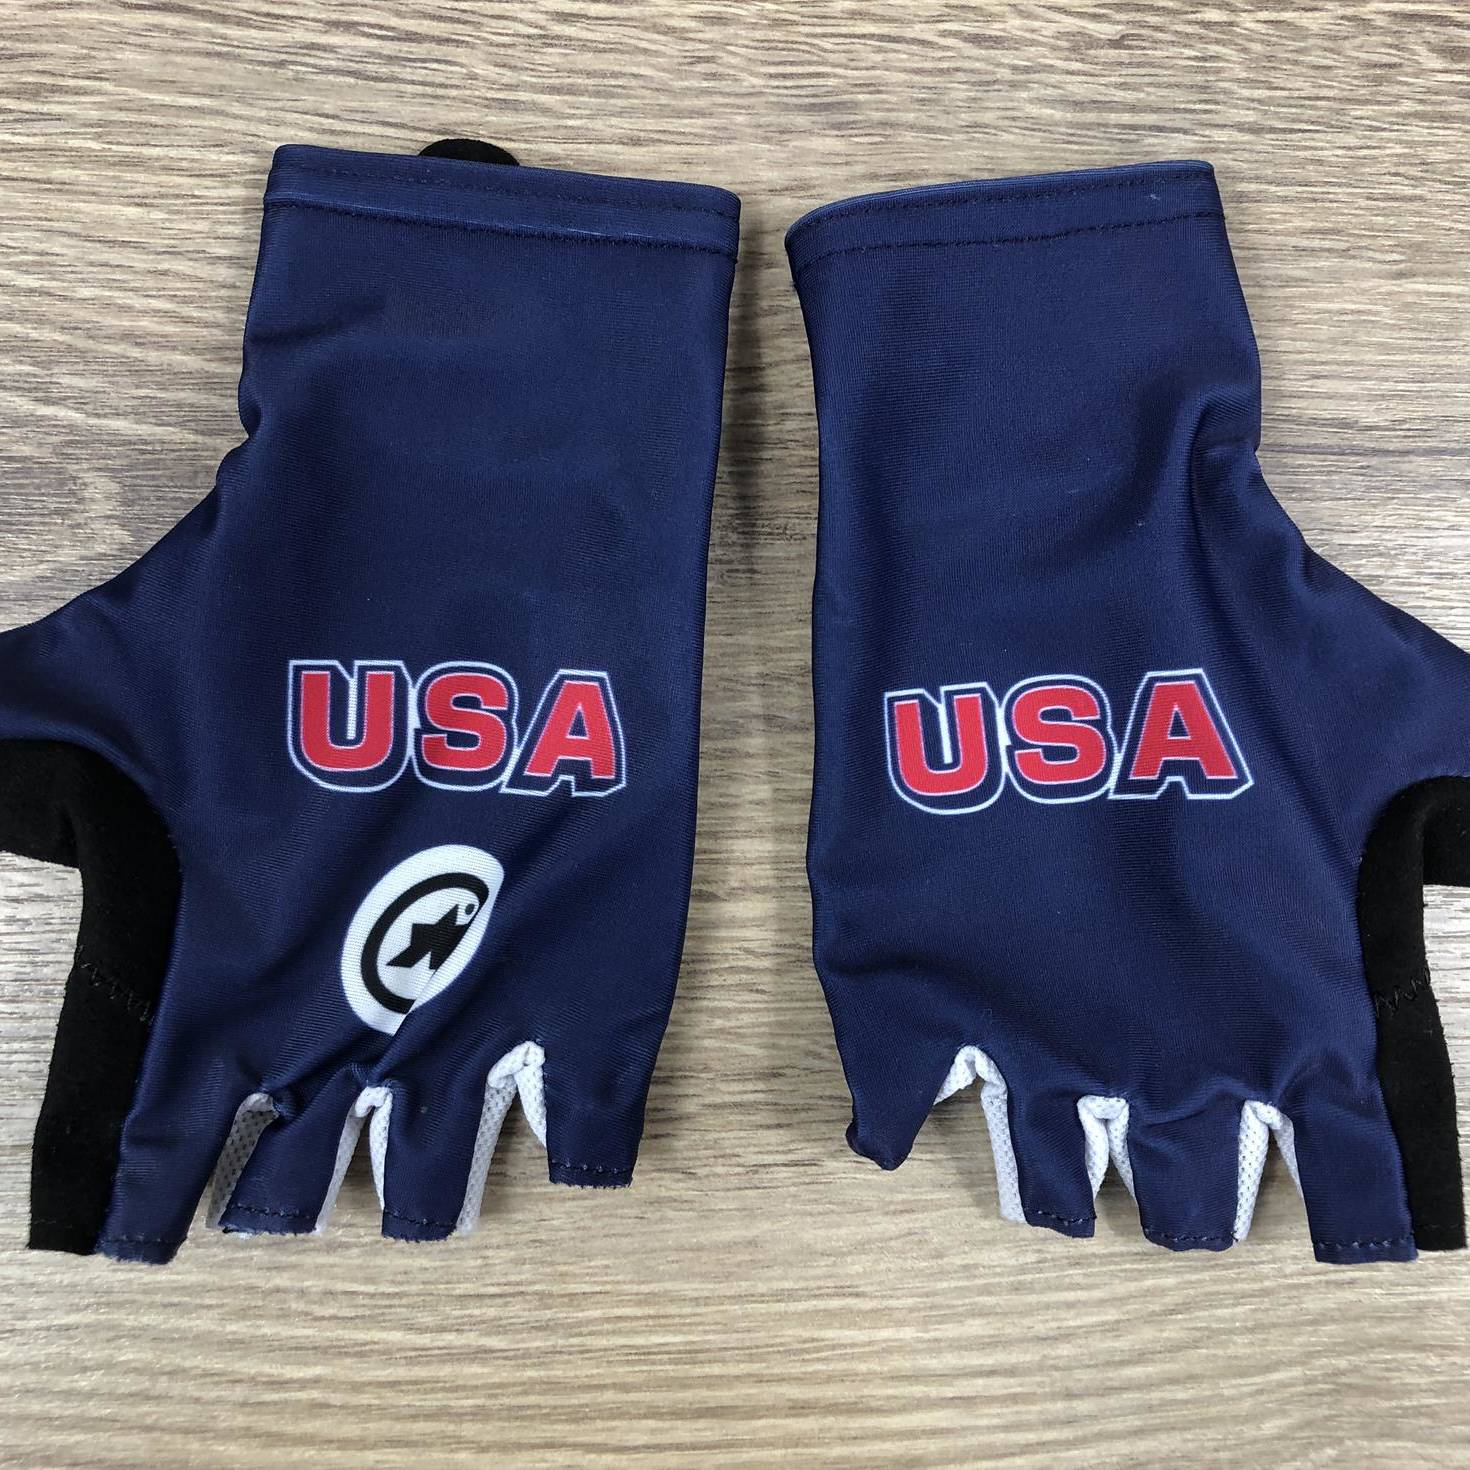 Aero Gloves - USA Cycling National Team 00003278 (2)